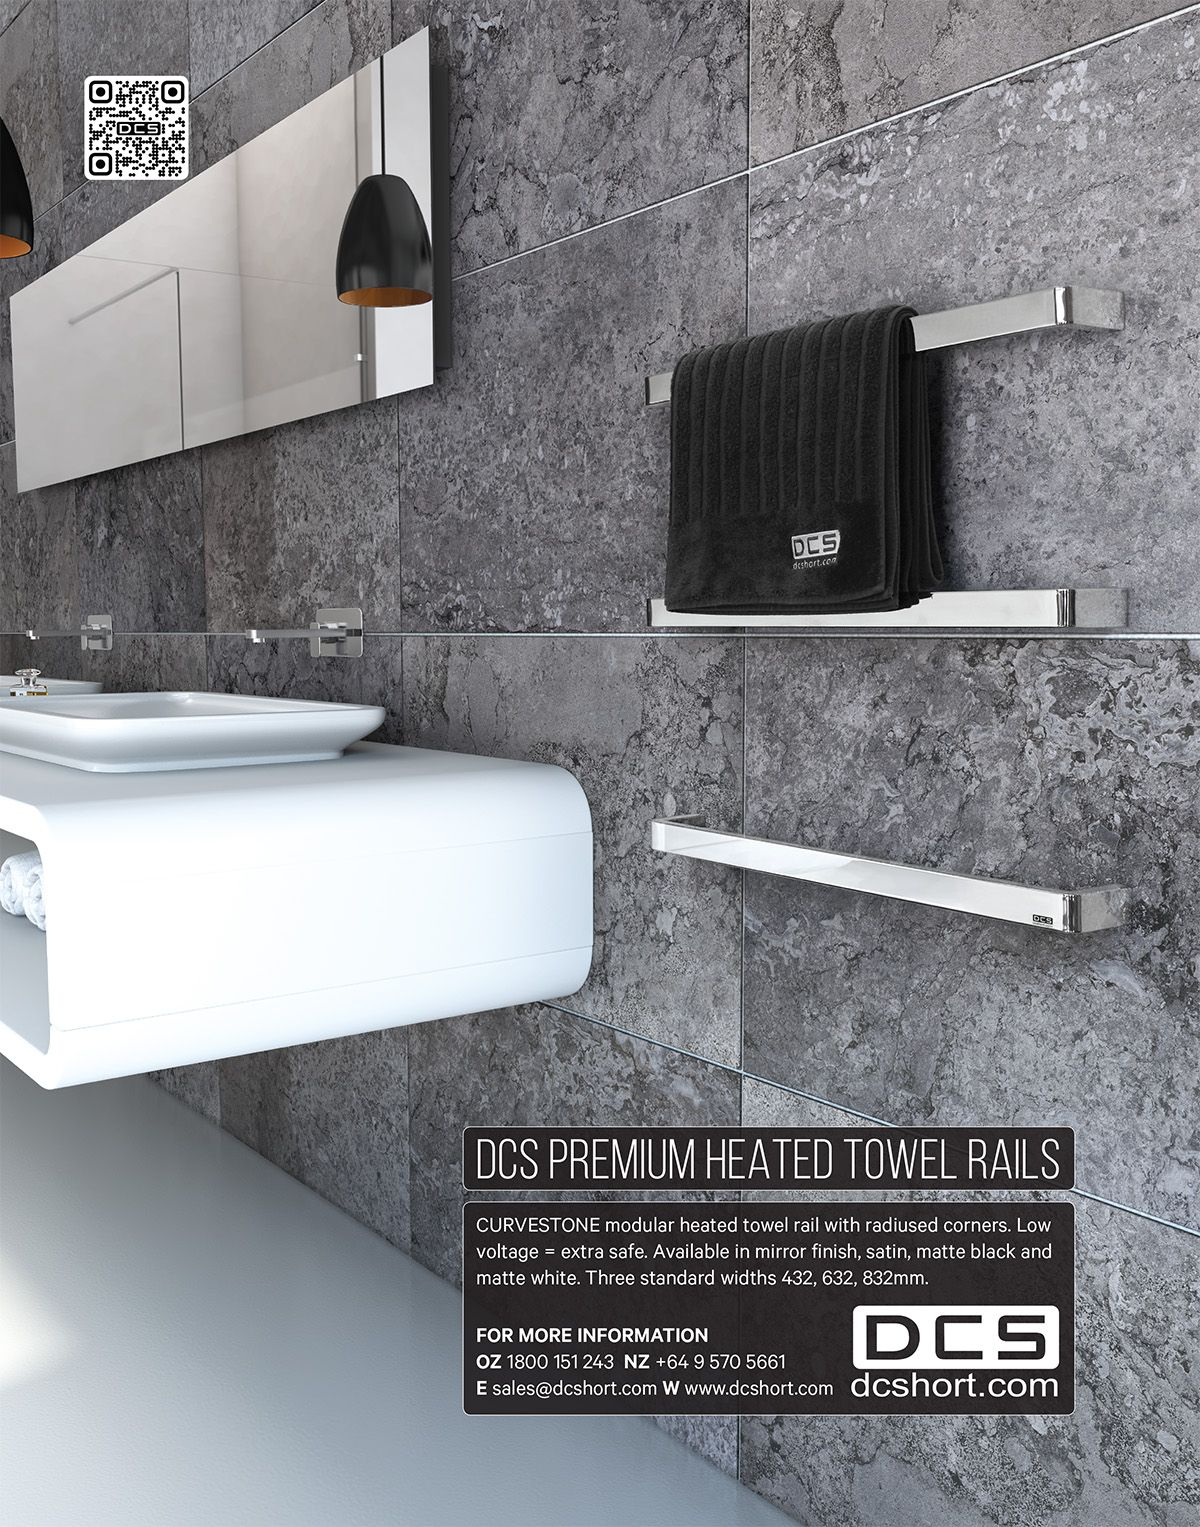 Kitchens & Bathrooms Quarterly - DCS Heated Towel Rails.